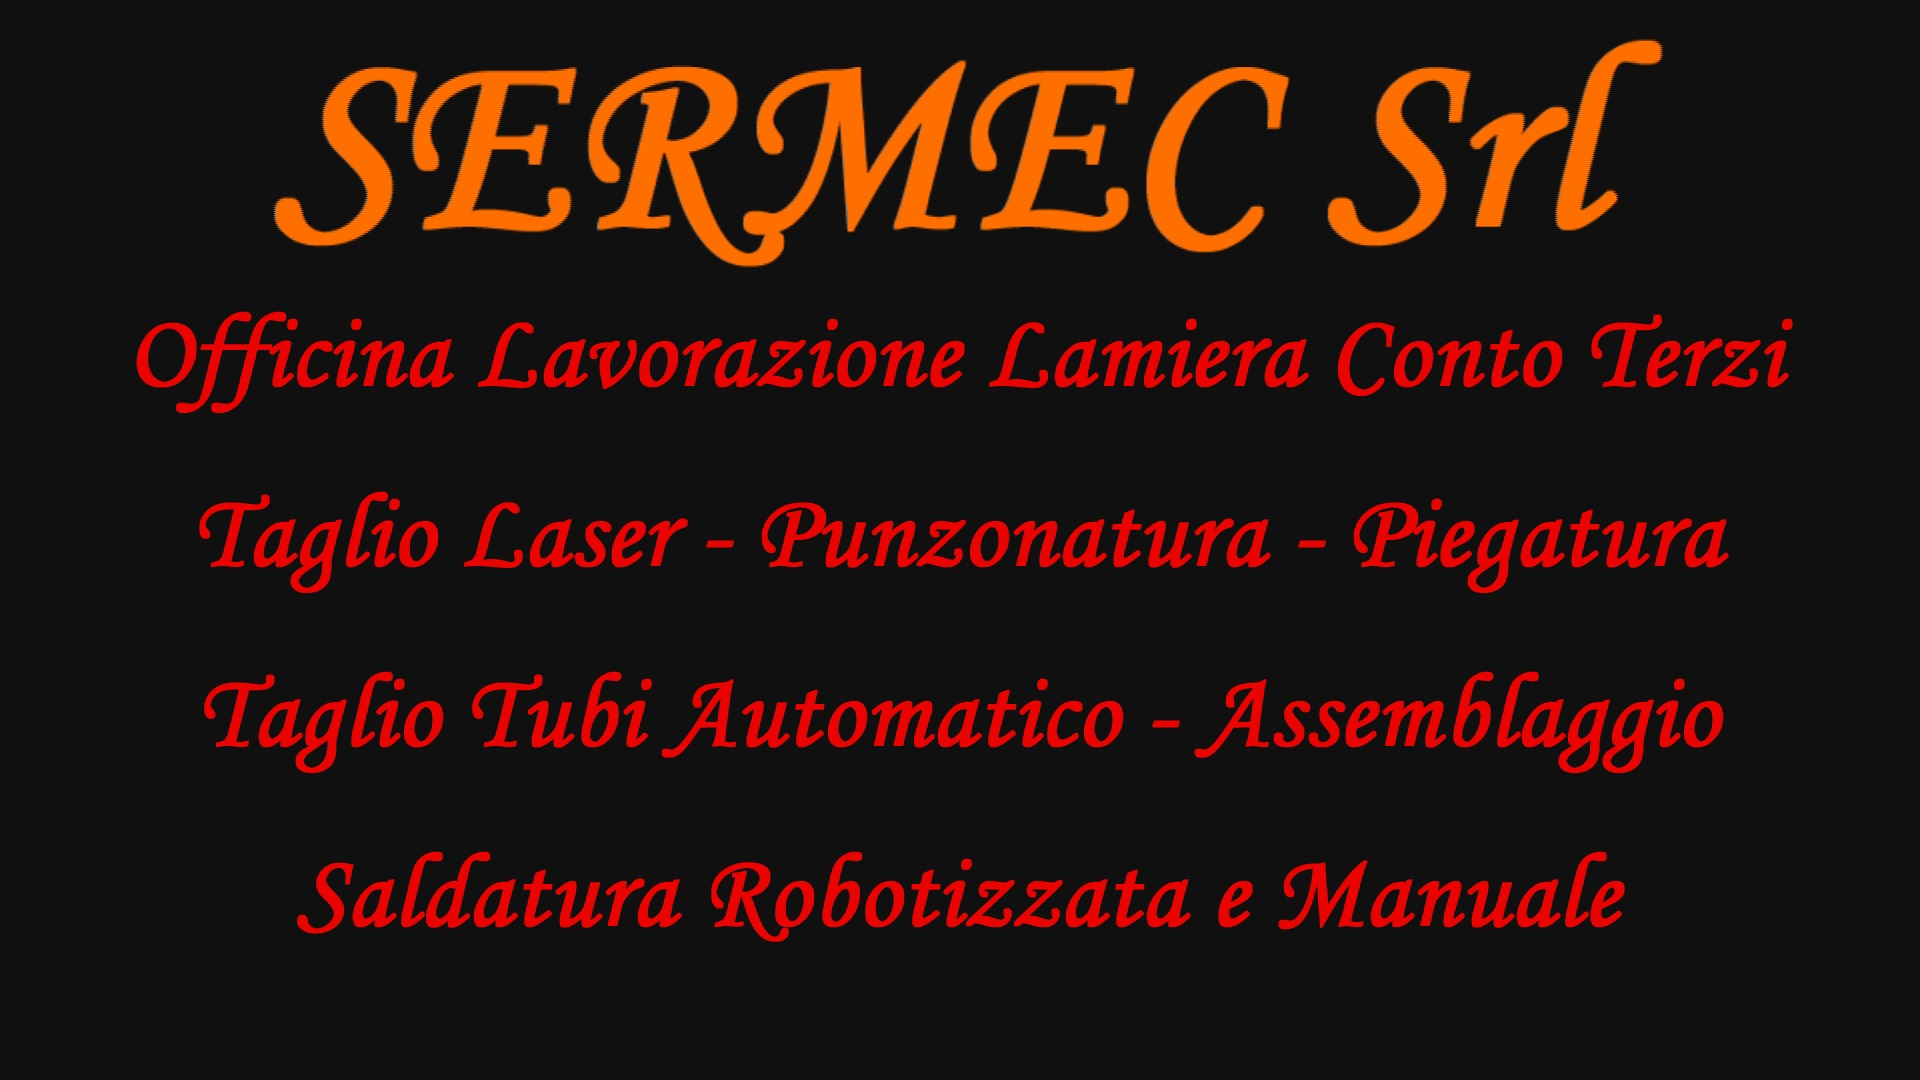 SERMEC-PER-SPONSOR-ASD-BREAK-MC